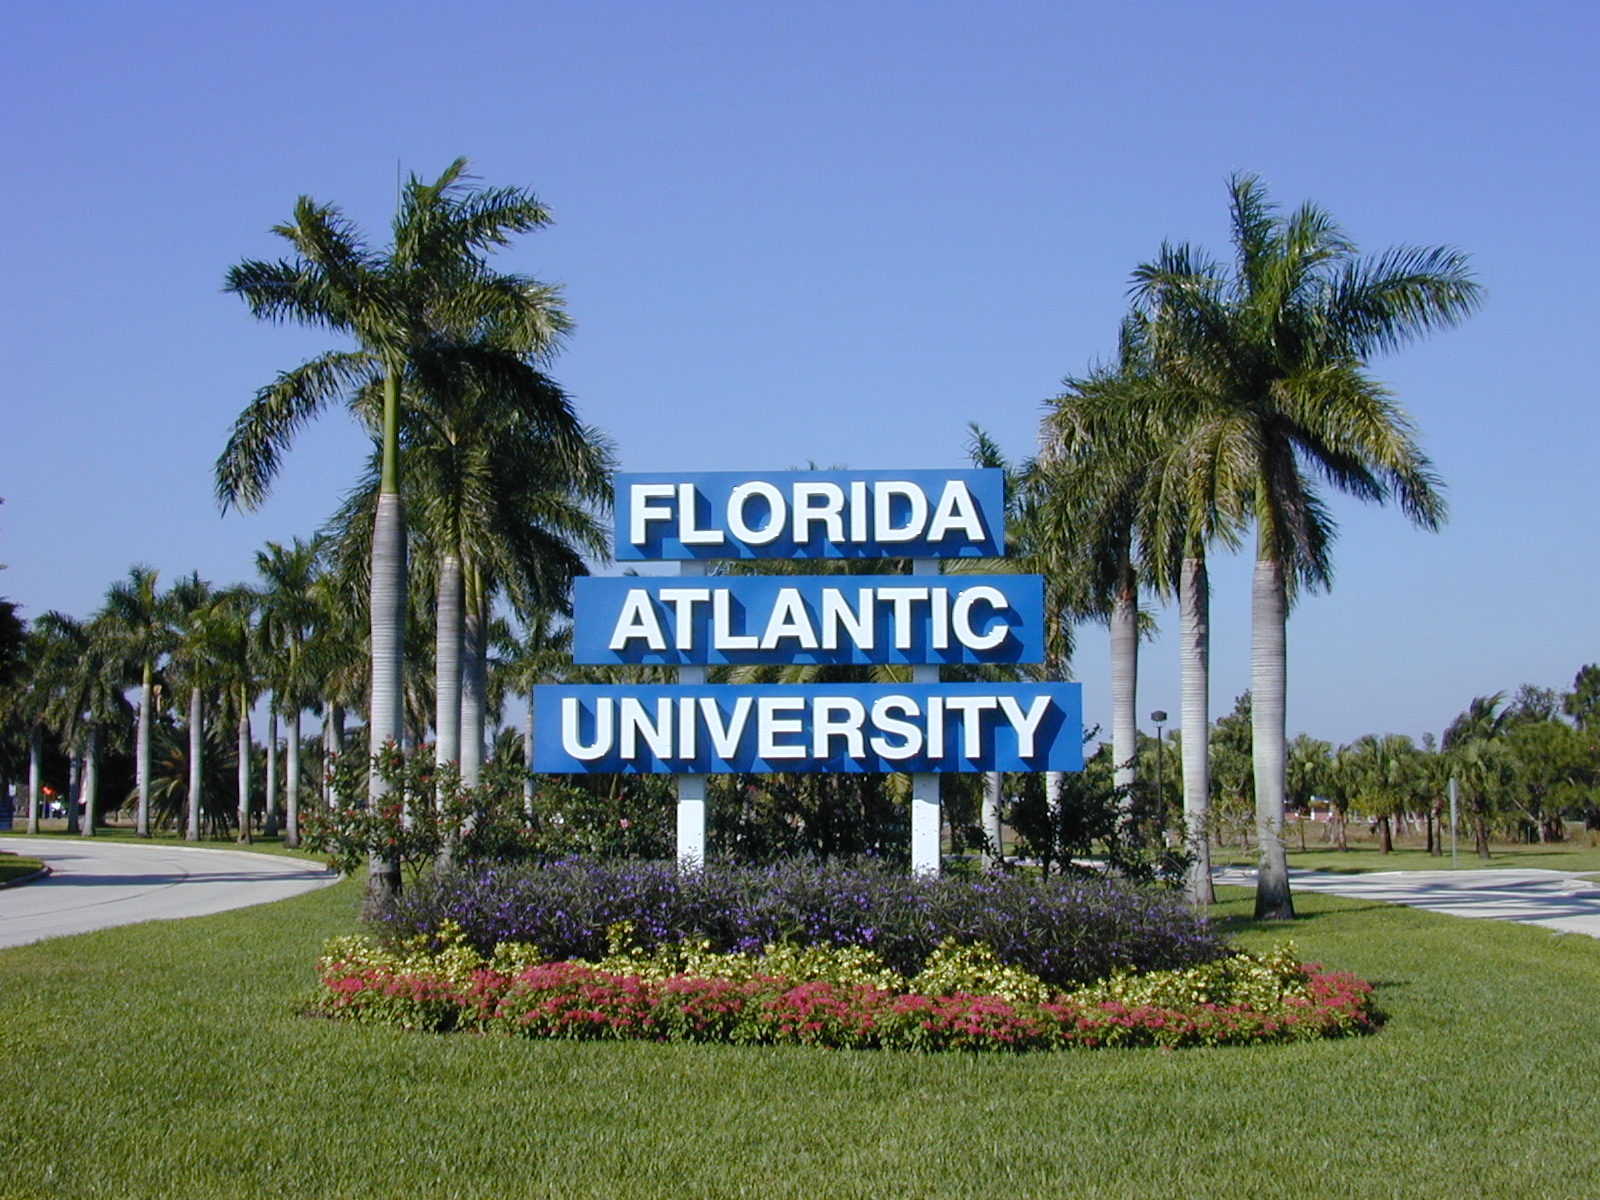 FAU_SIGN